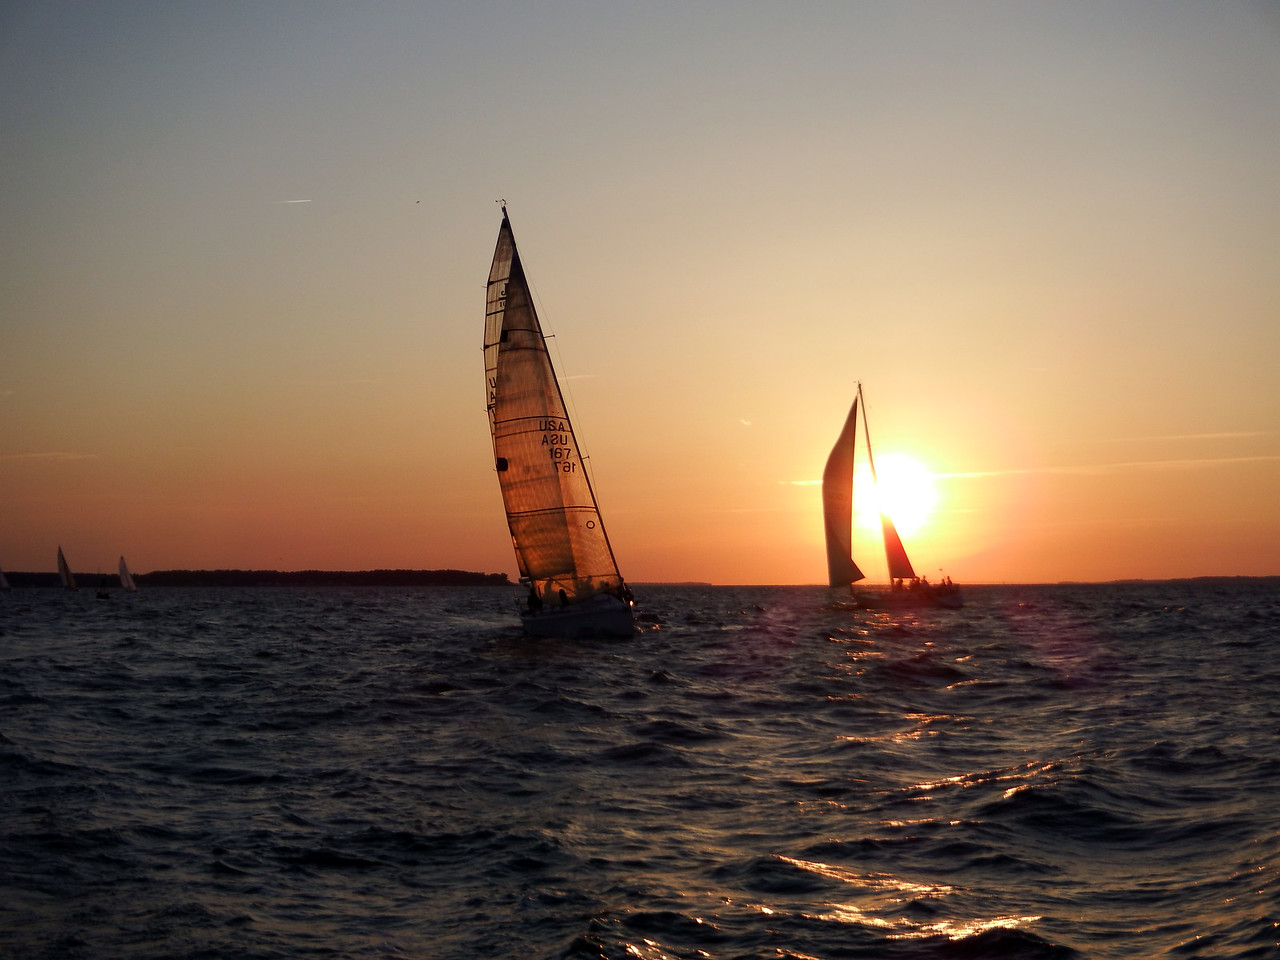 Double Eagle sailing by Nereid in the sunset.